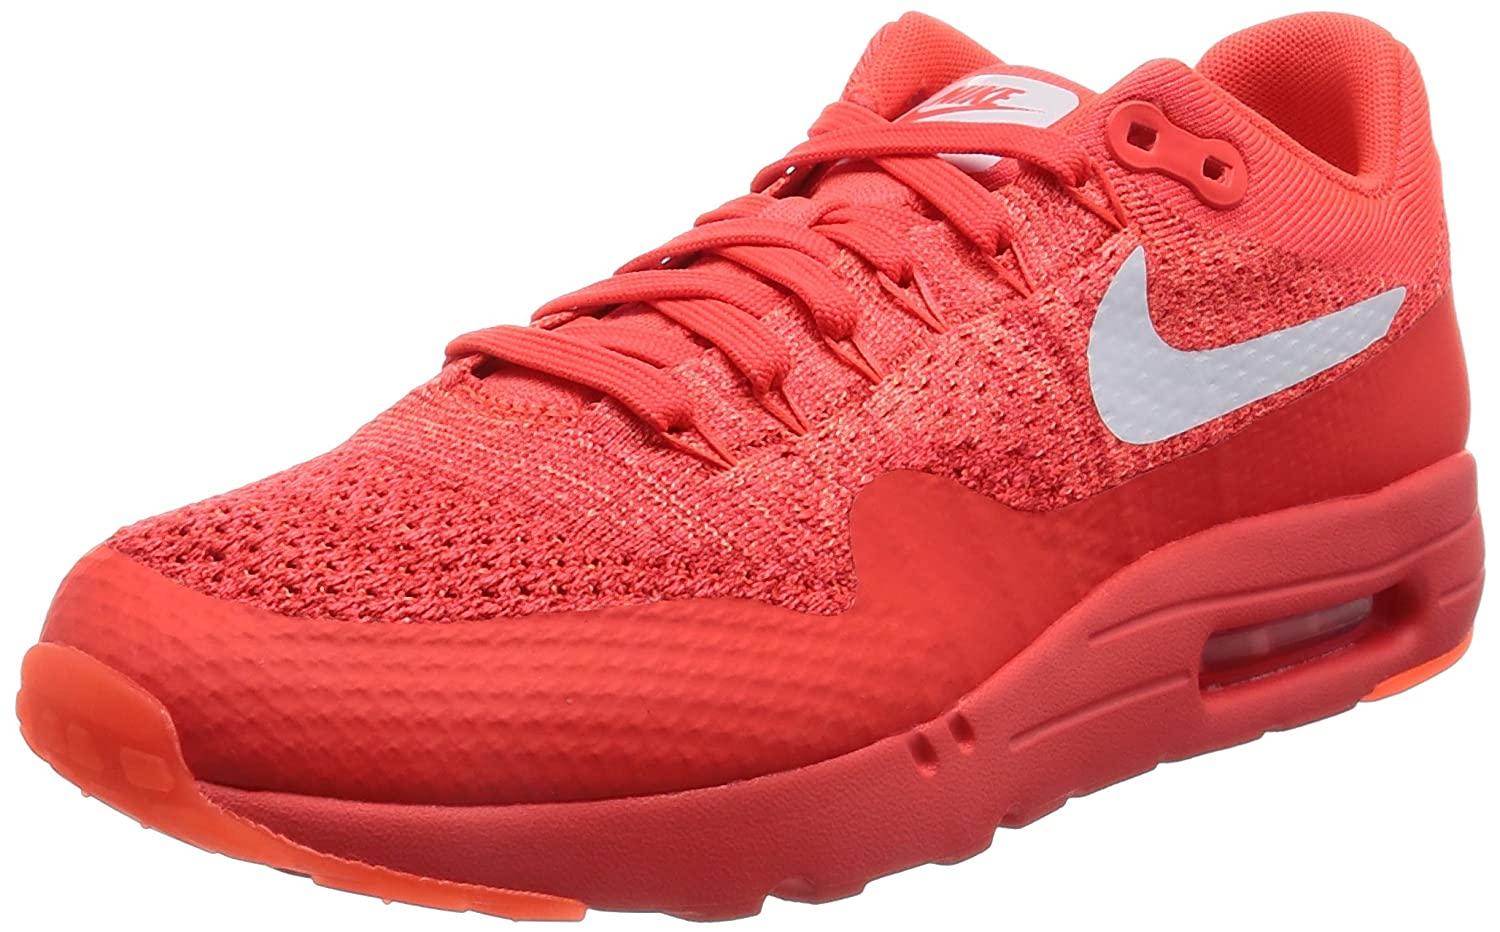 Rouge (Bright Crimson   blanc-university rouge) Nike Air Max 1 Ultra Flyknit, Chaussures de Running Entrainement Homme 47.5 EU